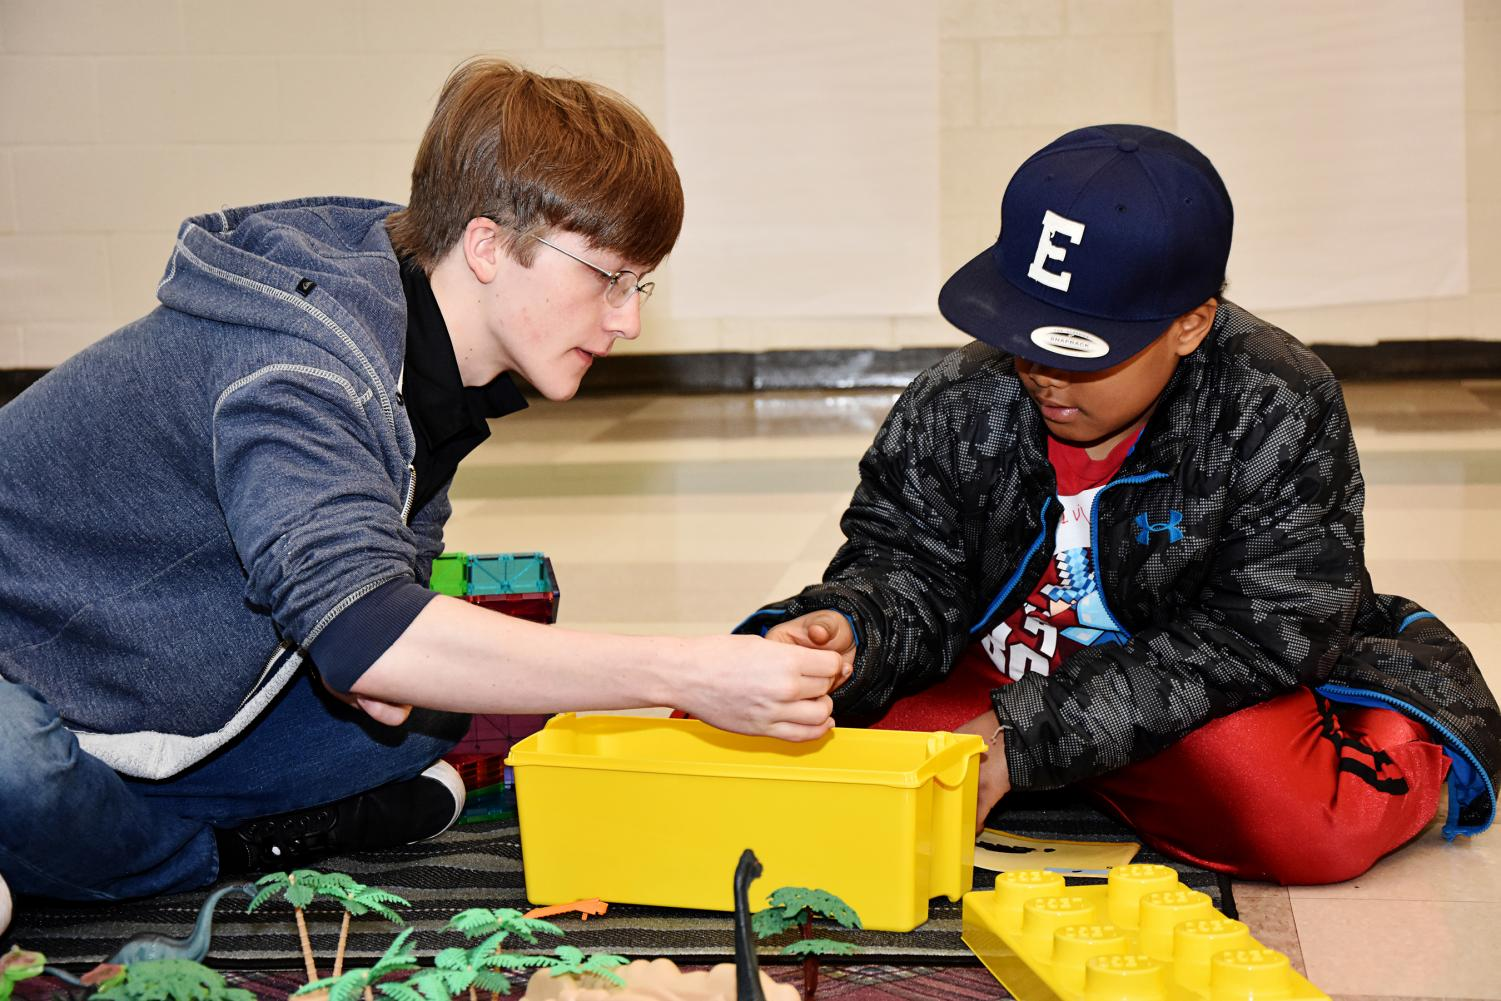 Senior Crispin Gambill works with special needs student at MDE school on Sept. 15.